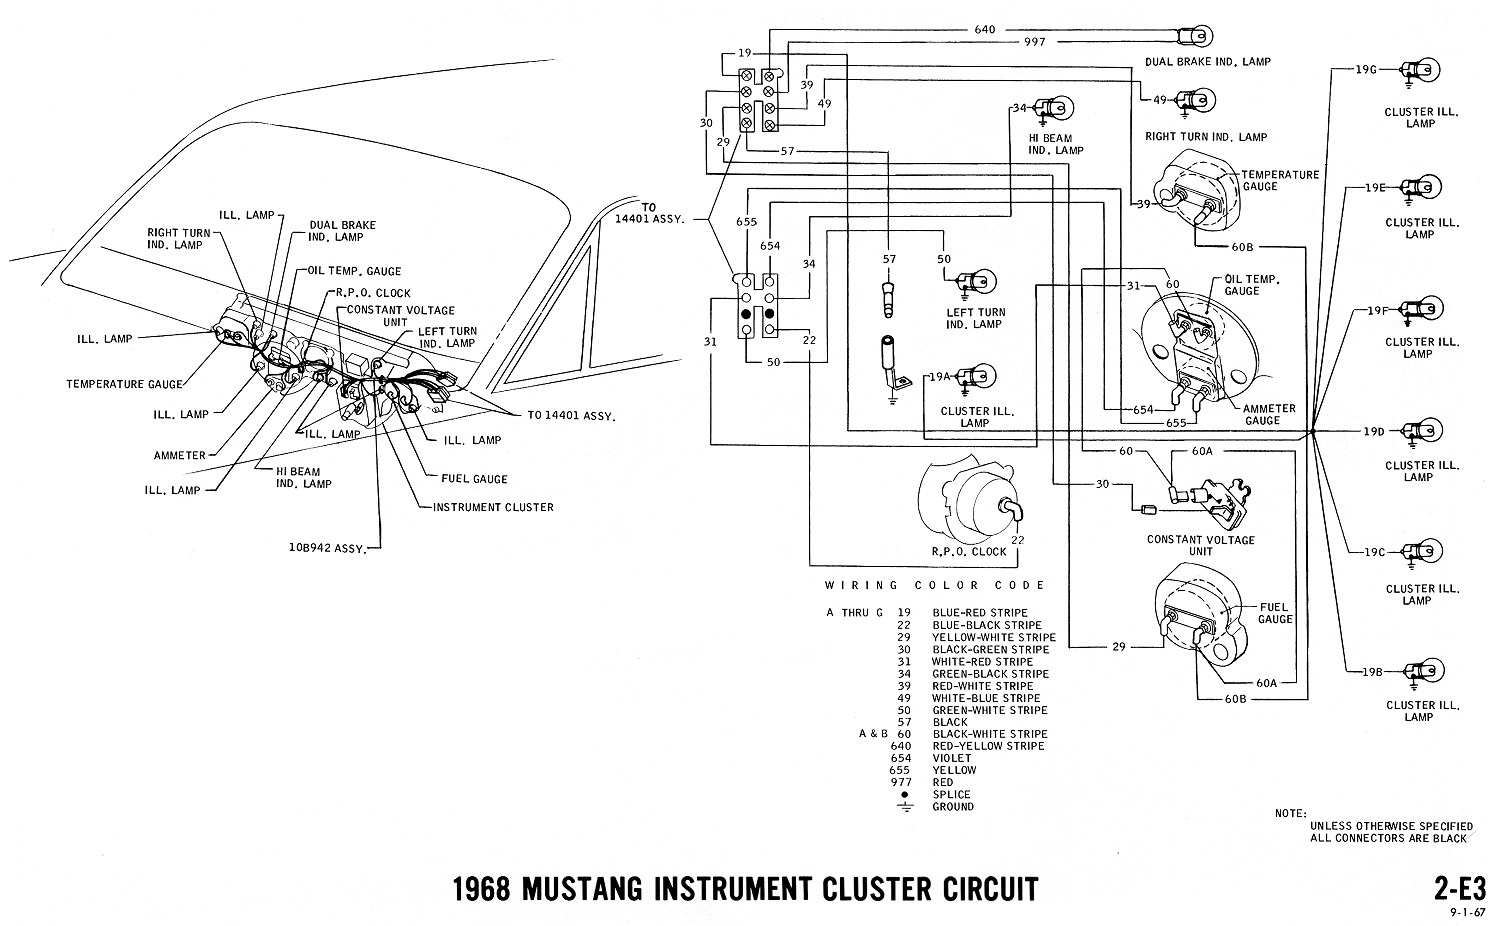 1968 mustang headlight wiring diagrams wiring diagram data rh 10 5 6 reisen fuer meister de 1979 Trans AM Headlight Wiring Diagram 1970 ford mustang headlight switch wiring diagram